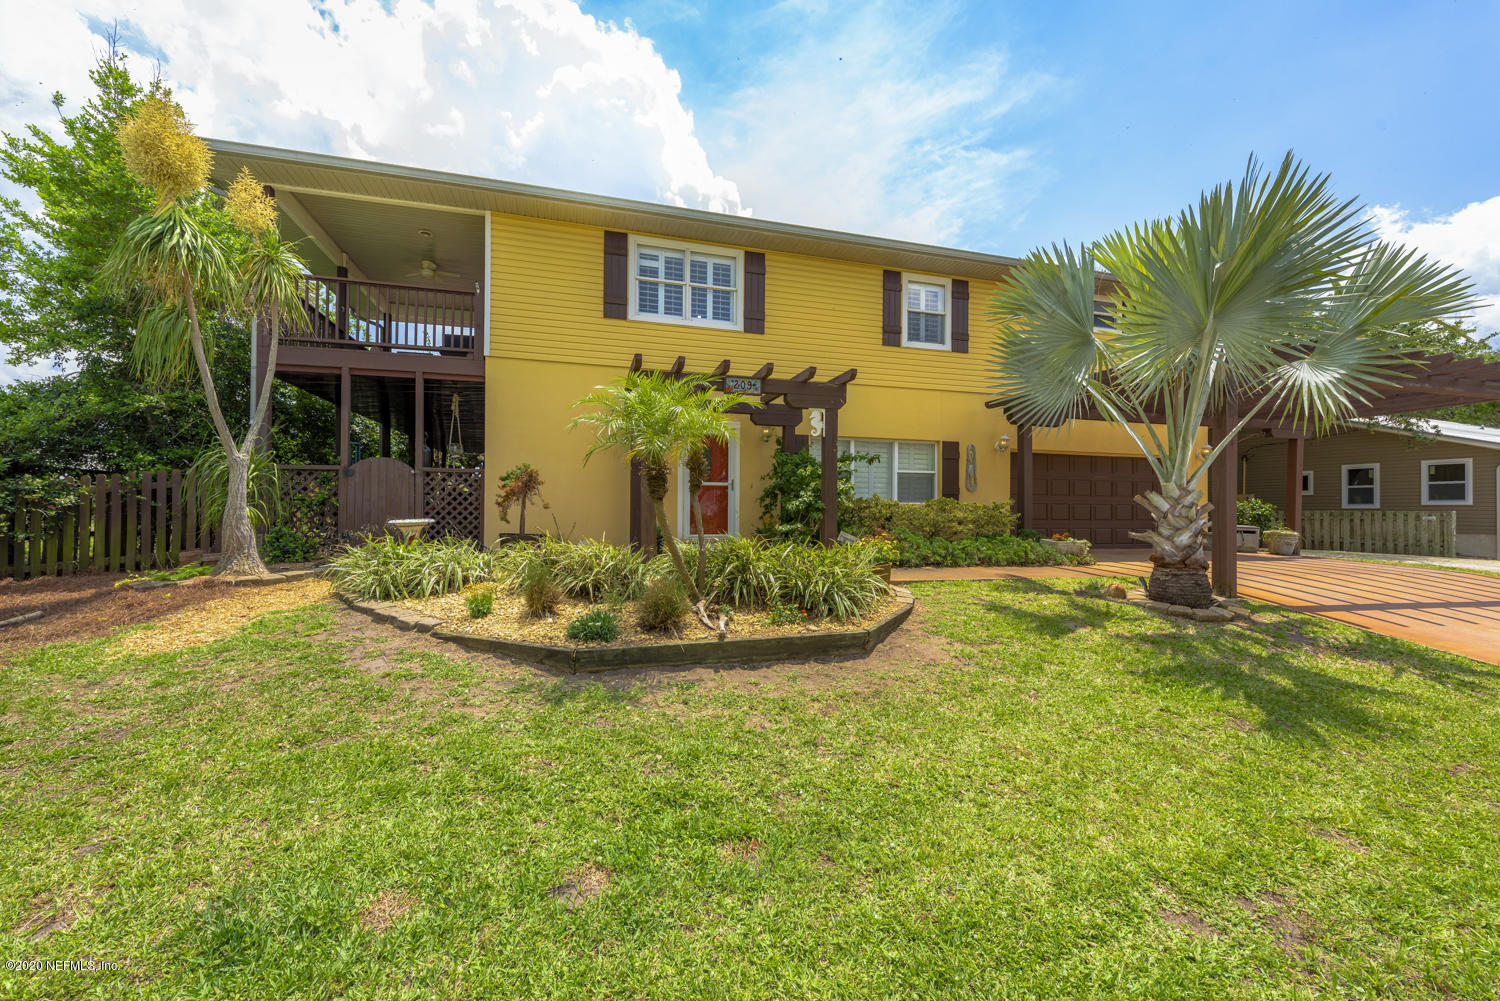 209 12TH, ST AUGUSTINE, FLORIDA 32080, 3 Bedrooms Bedrooms, ,3 BathroomsBathrooms,Residential,For sale,12TH,1052685